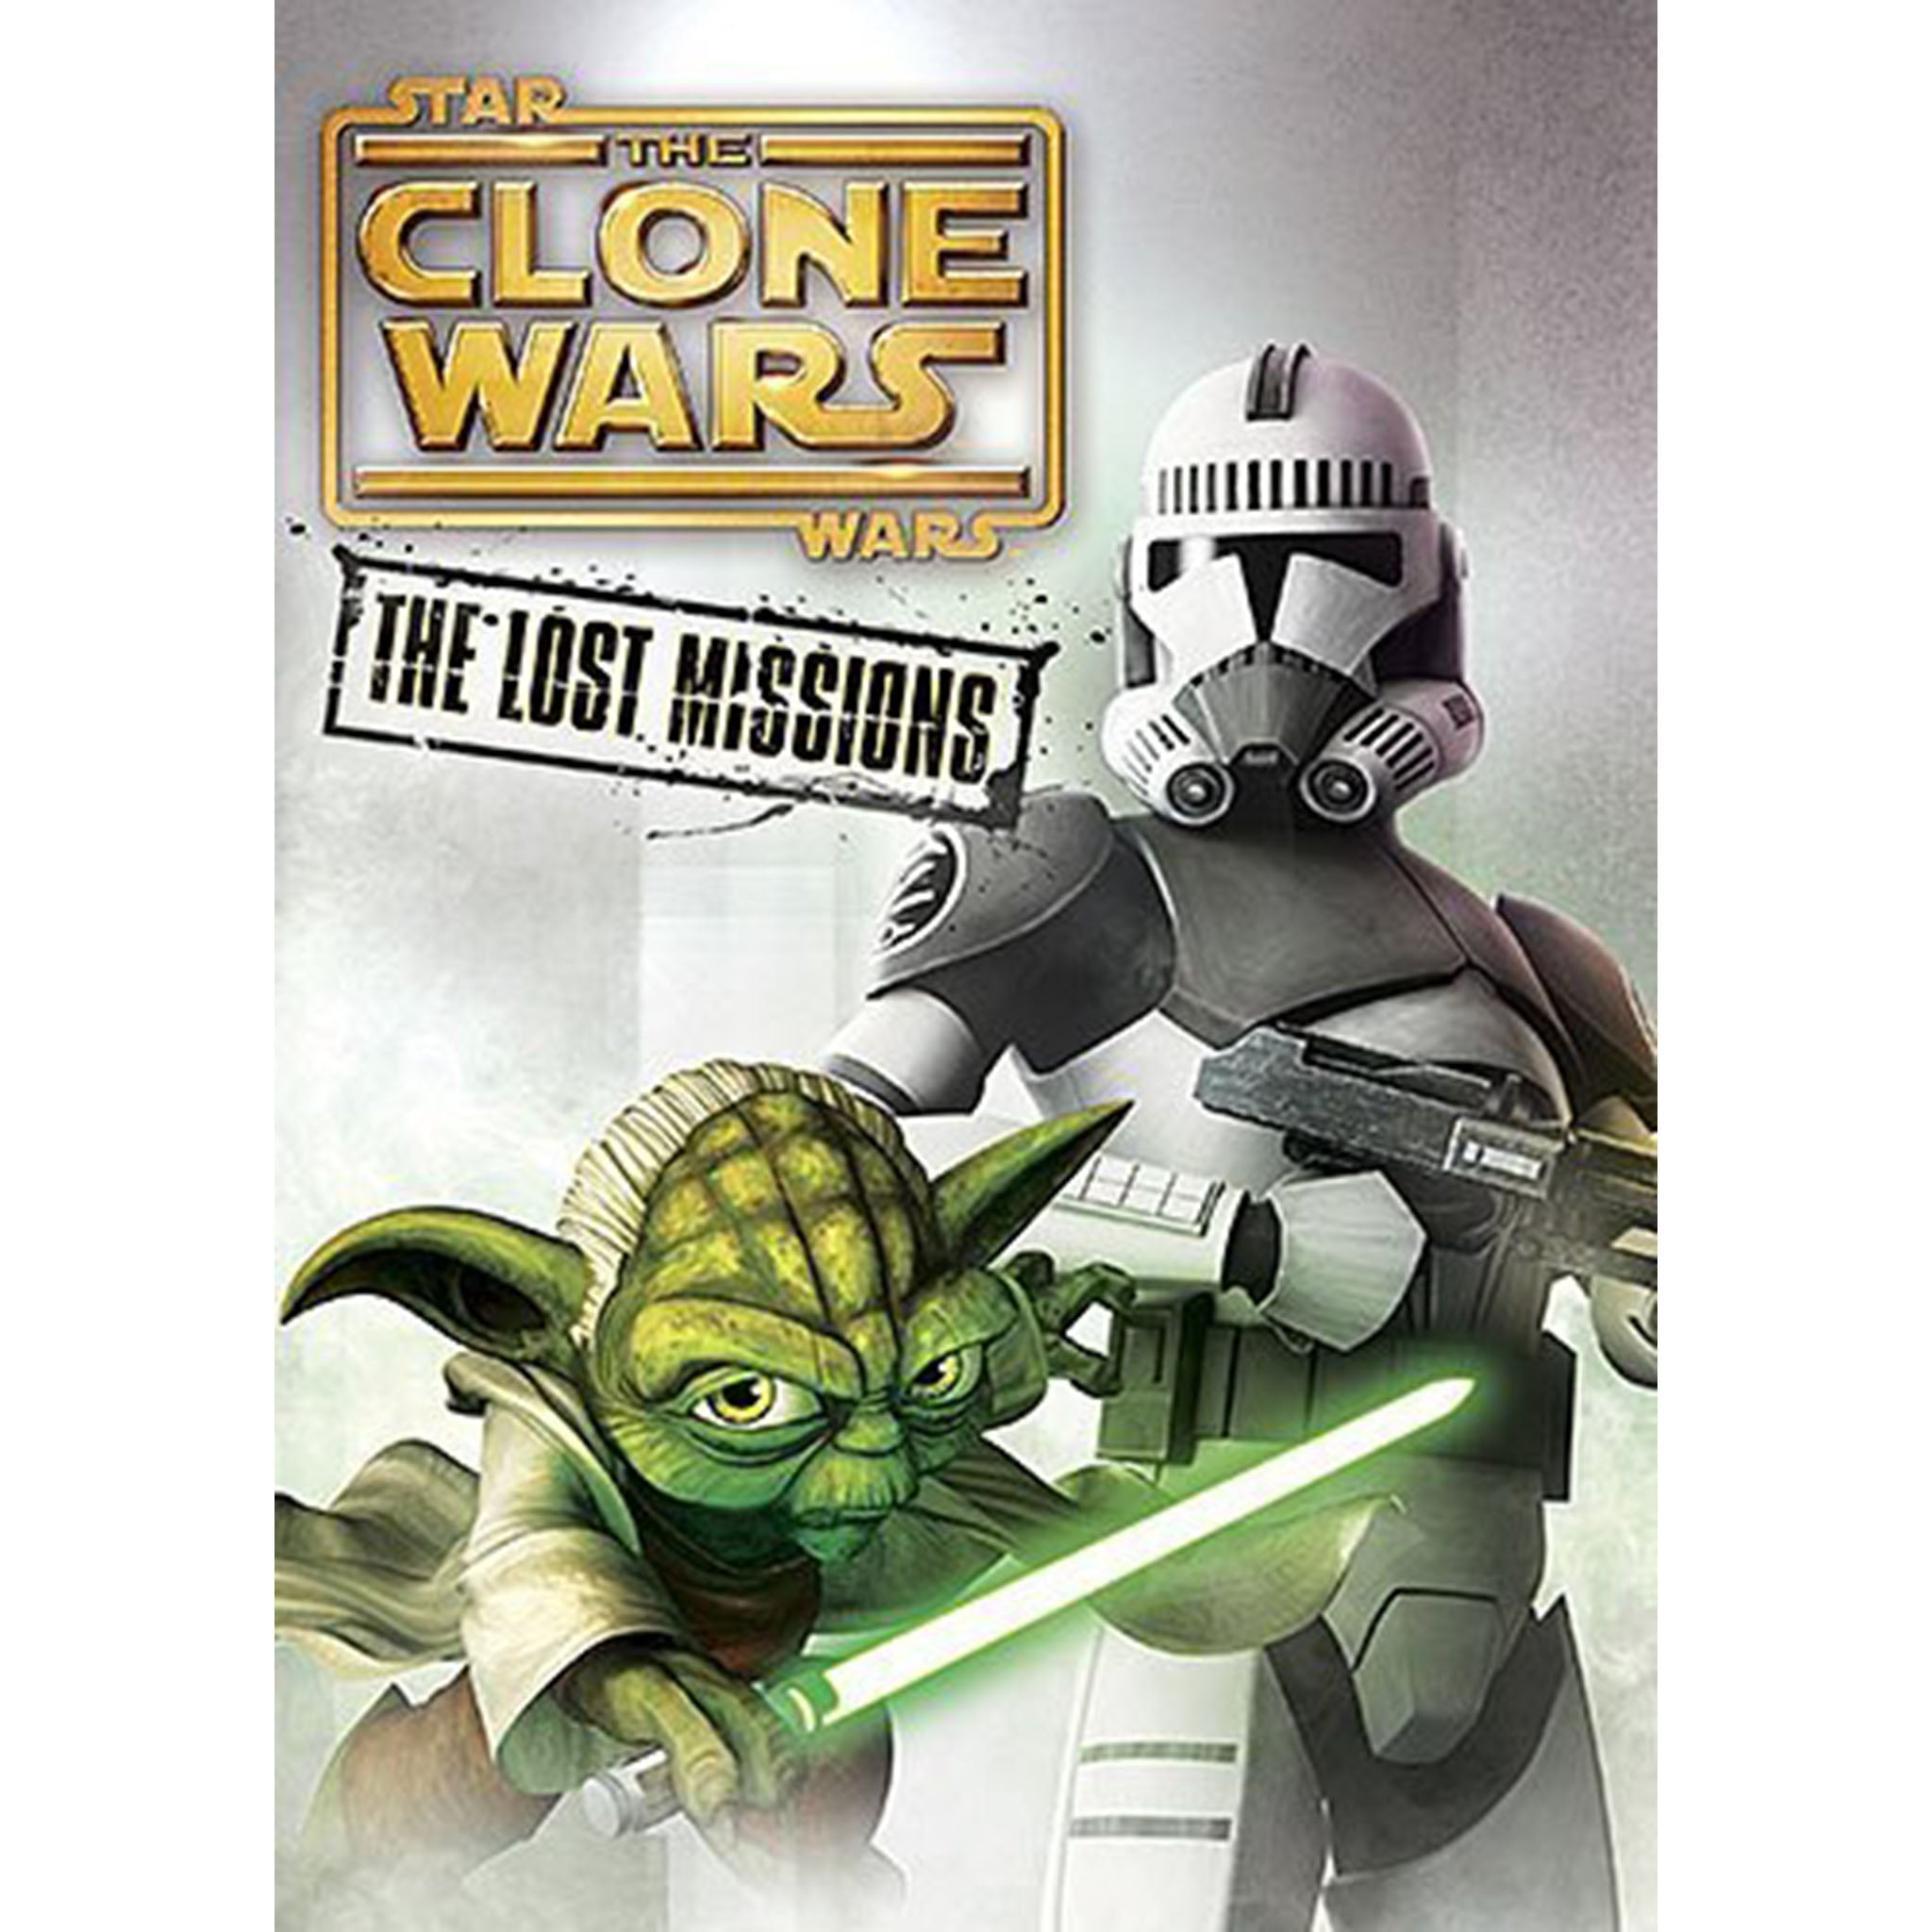 Star Wars: The Clone Wars - The Lost Missions (DVD) - DVDsHQ